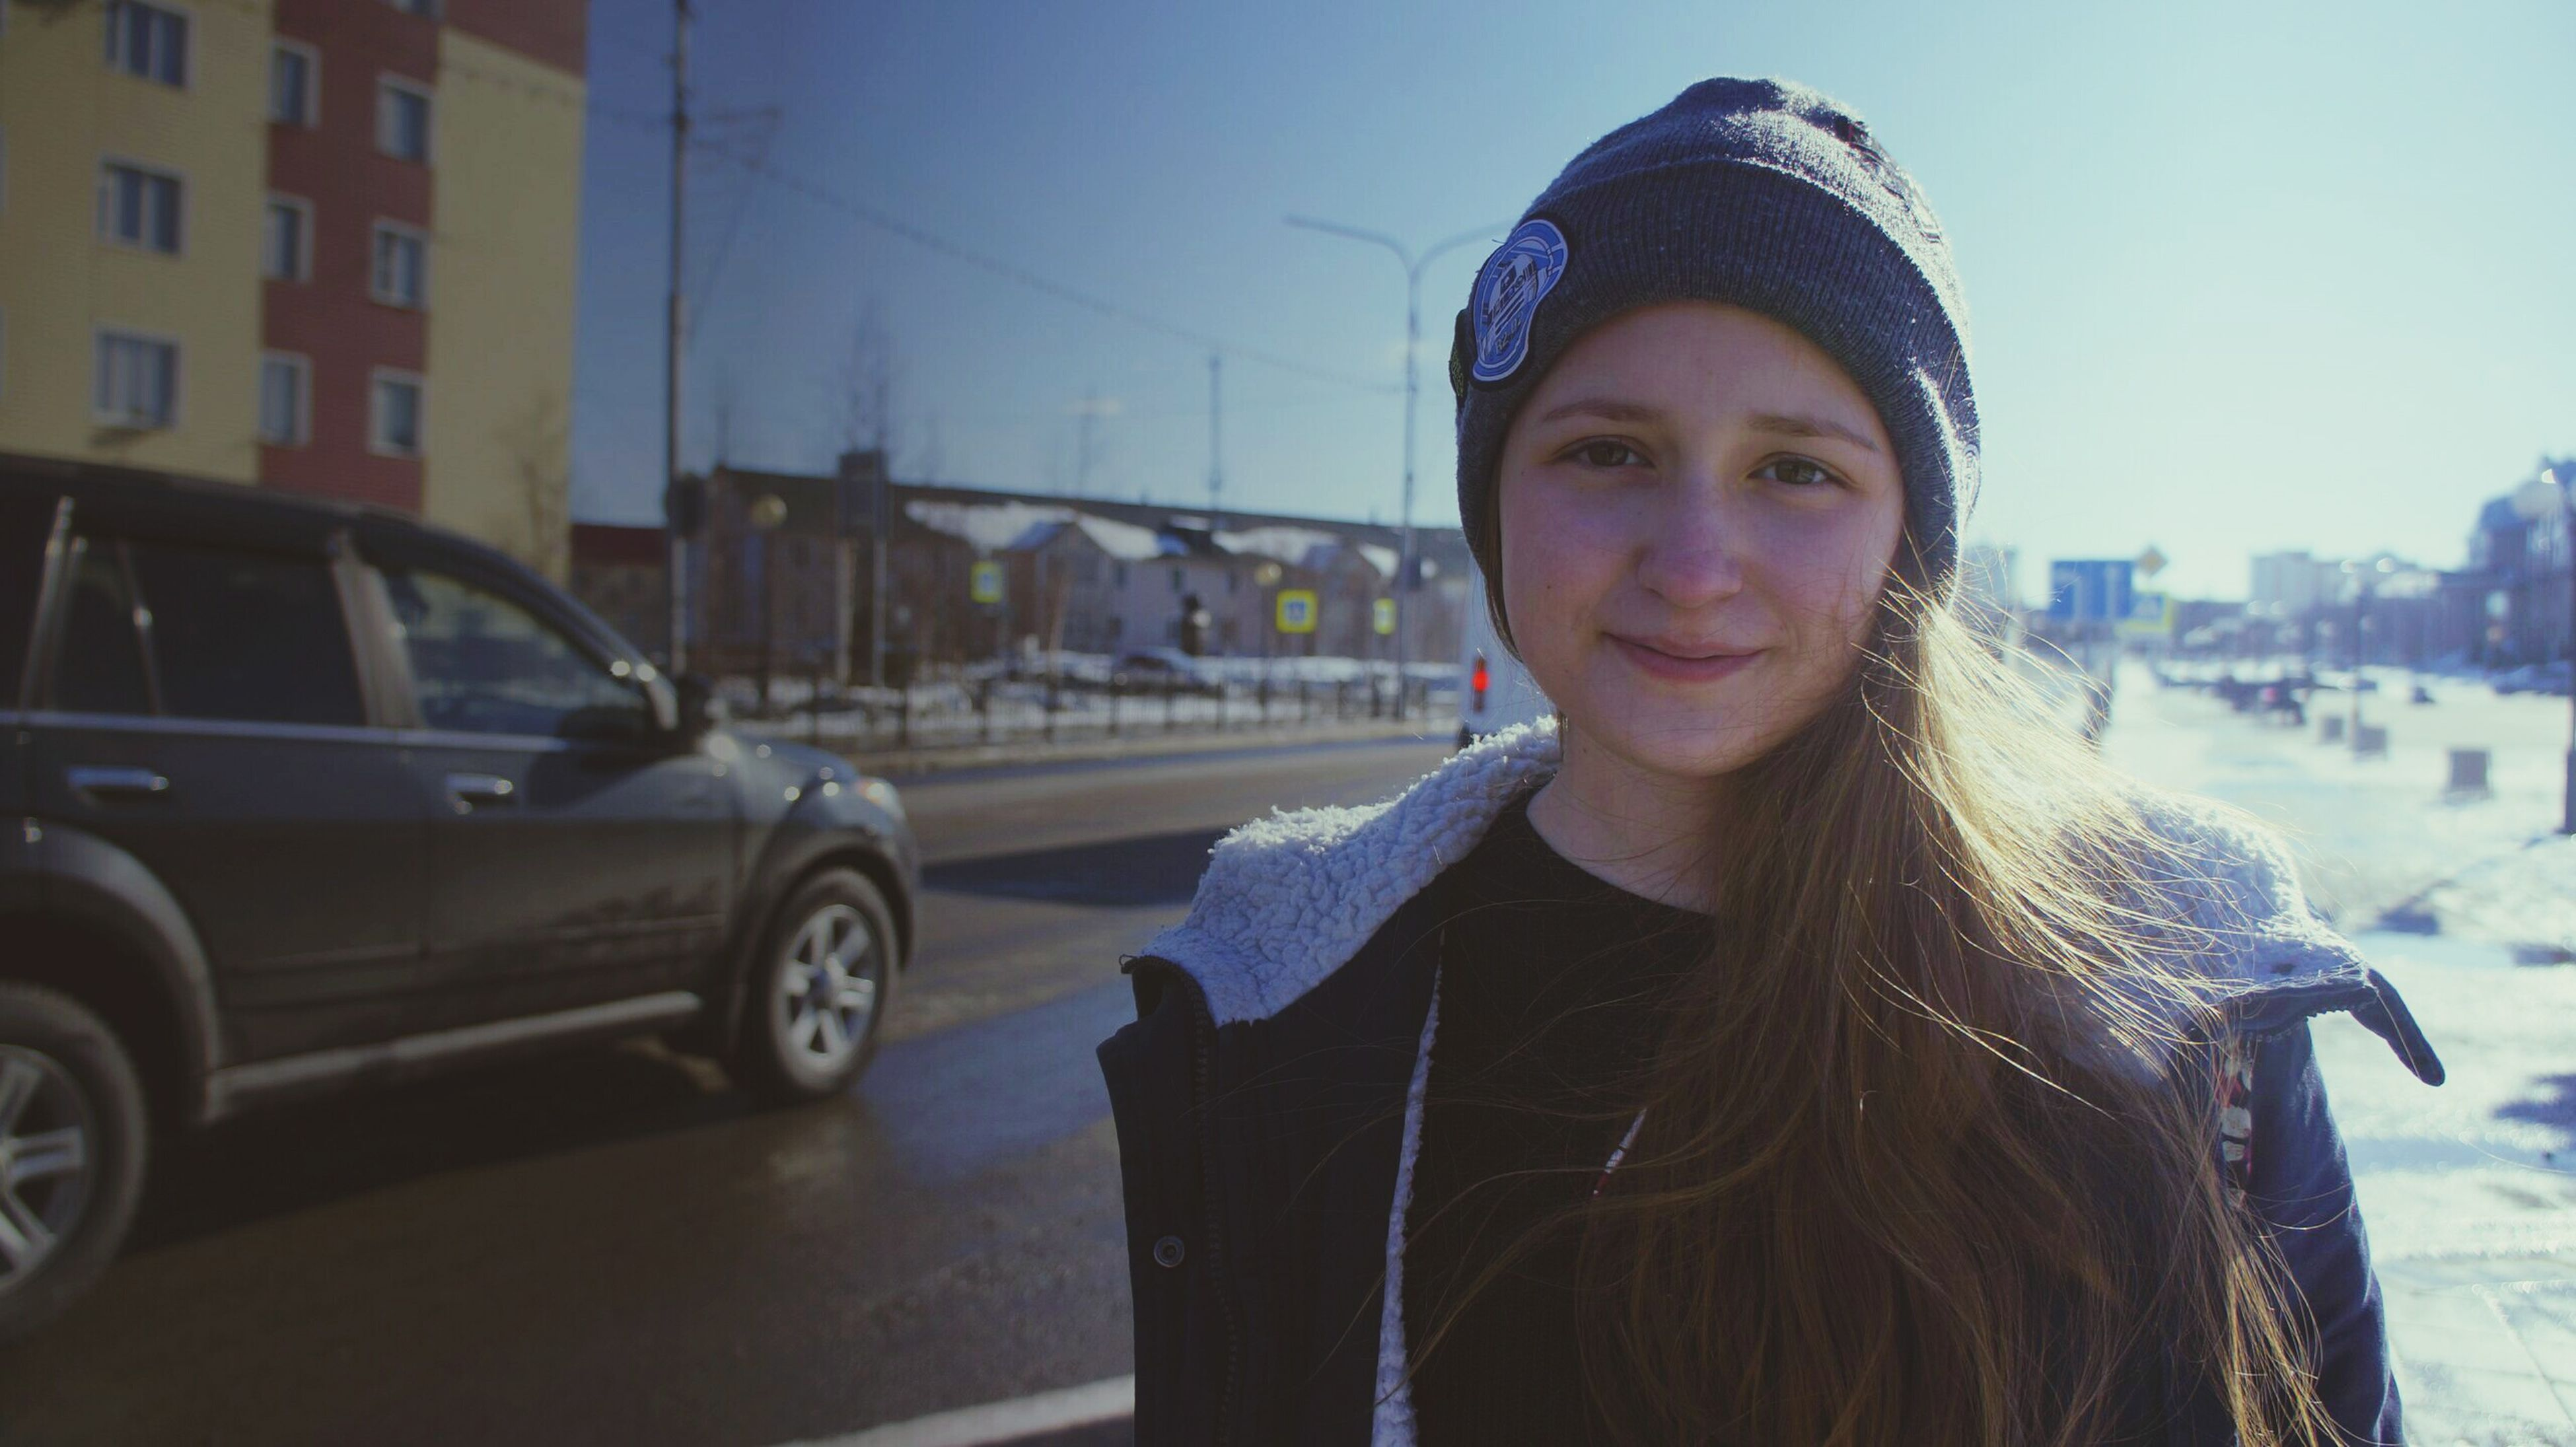 looking at camera, portrait, real people, one person, car, smiling, front view, lifestyles, transportation, building exterior, happiness, knit hat, architecture, built structure, day, leisure activity, warm clothing, outdoors, young adult, sky, people